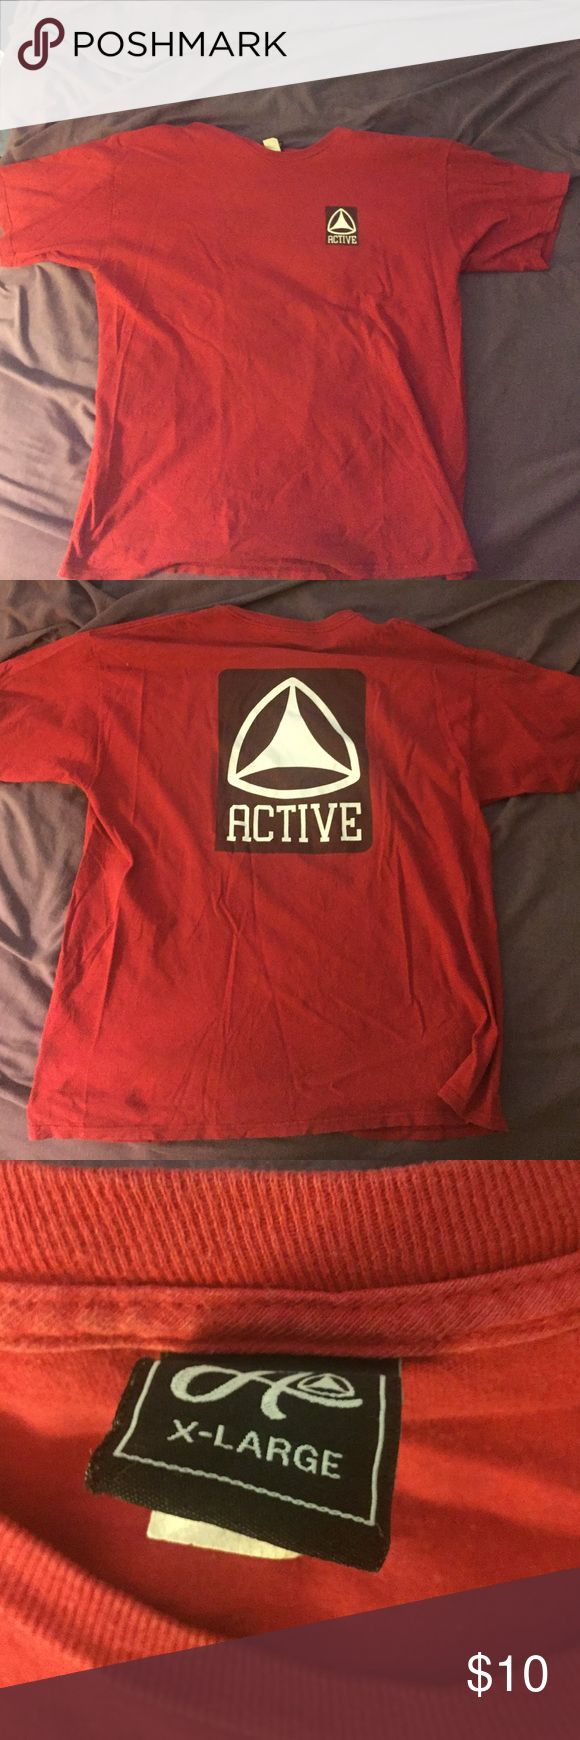 Active Ride Shop Red T-Shirt Small logo on pocket on the front, same symbol covering the entire back. Worn just a few times, in good condition Shirts Tees - Short Sleeve